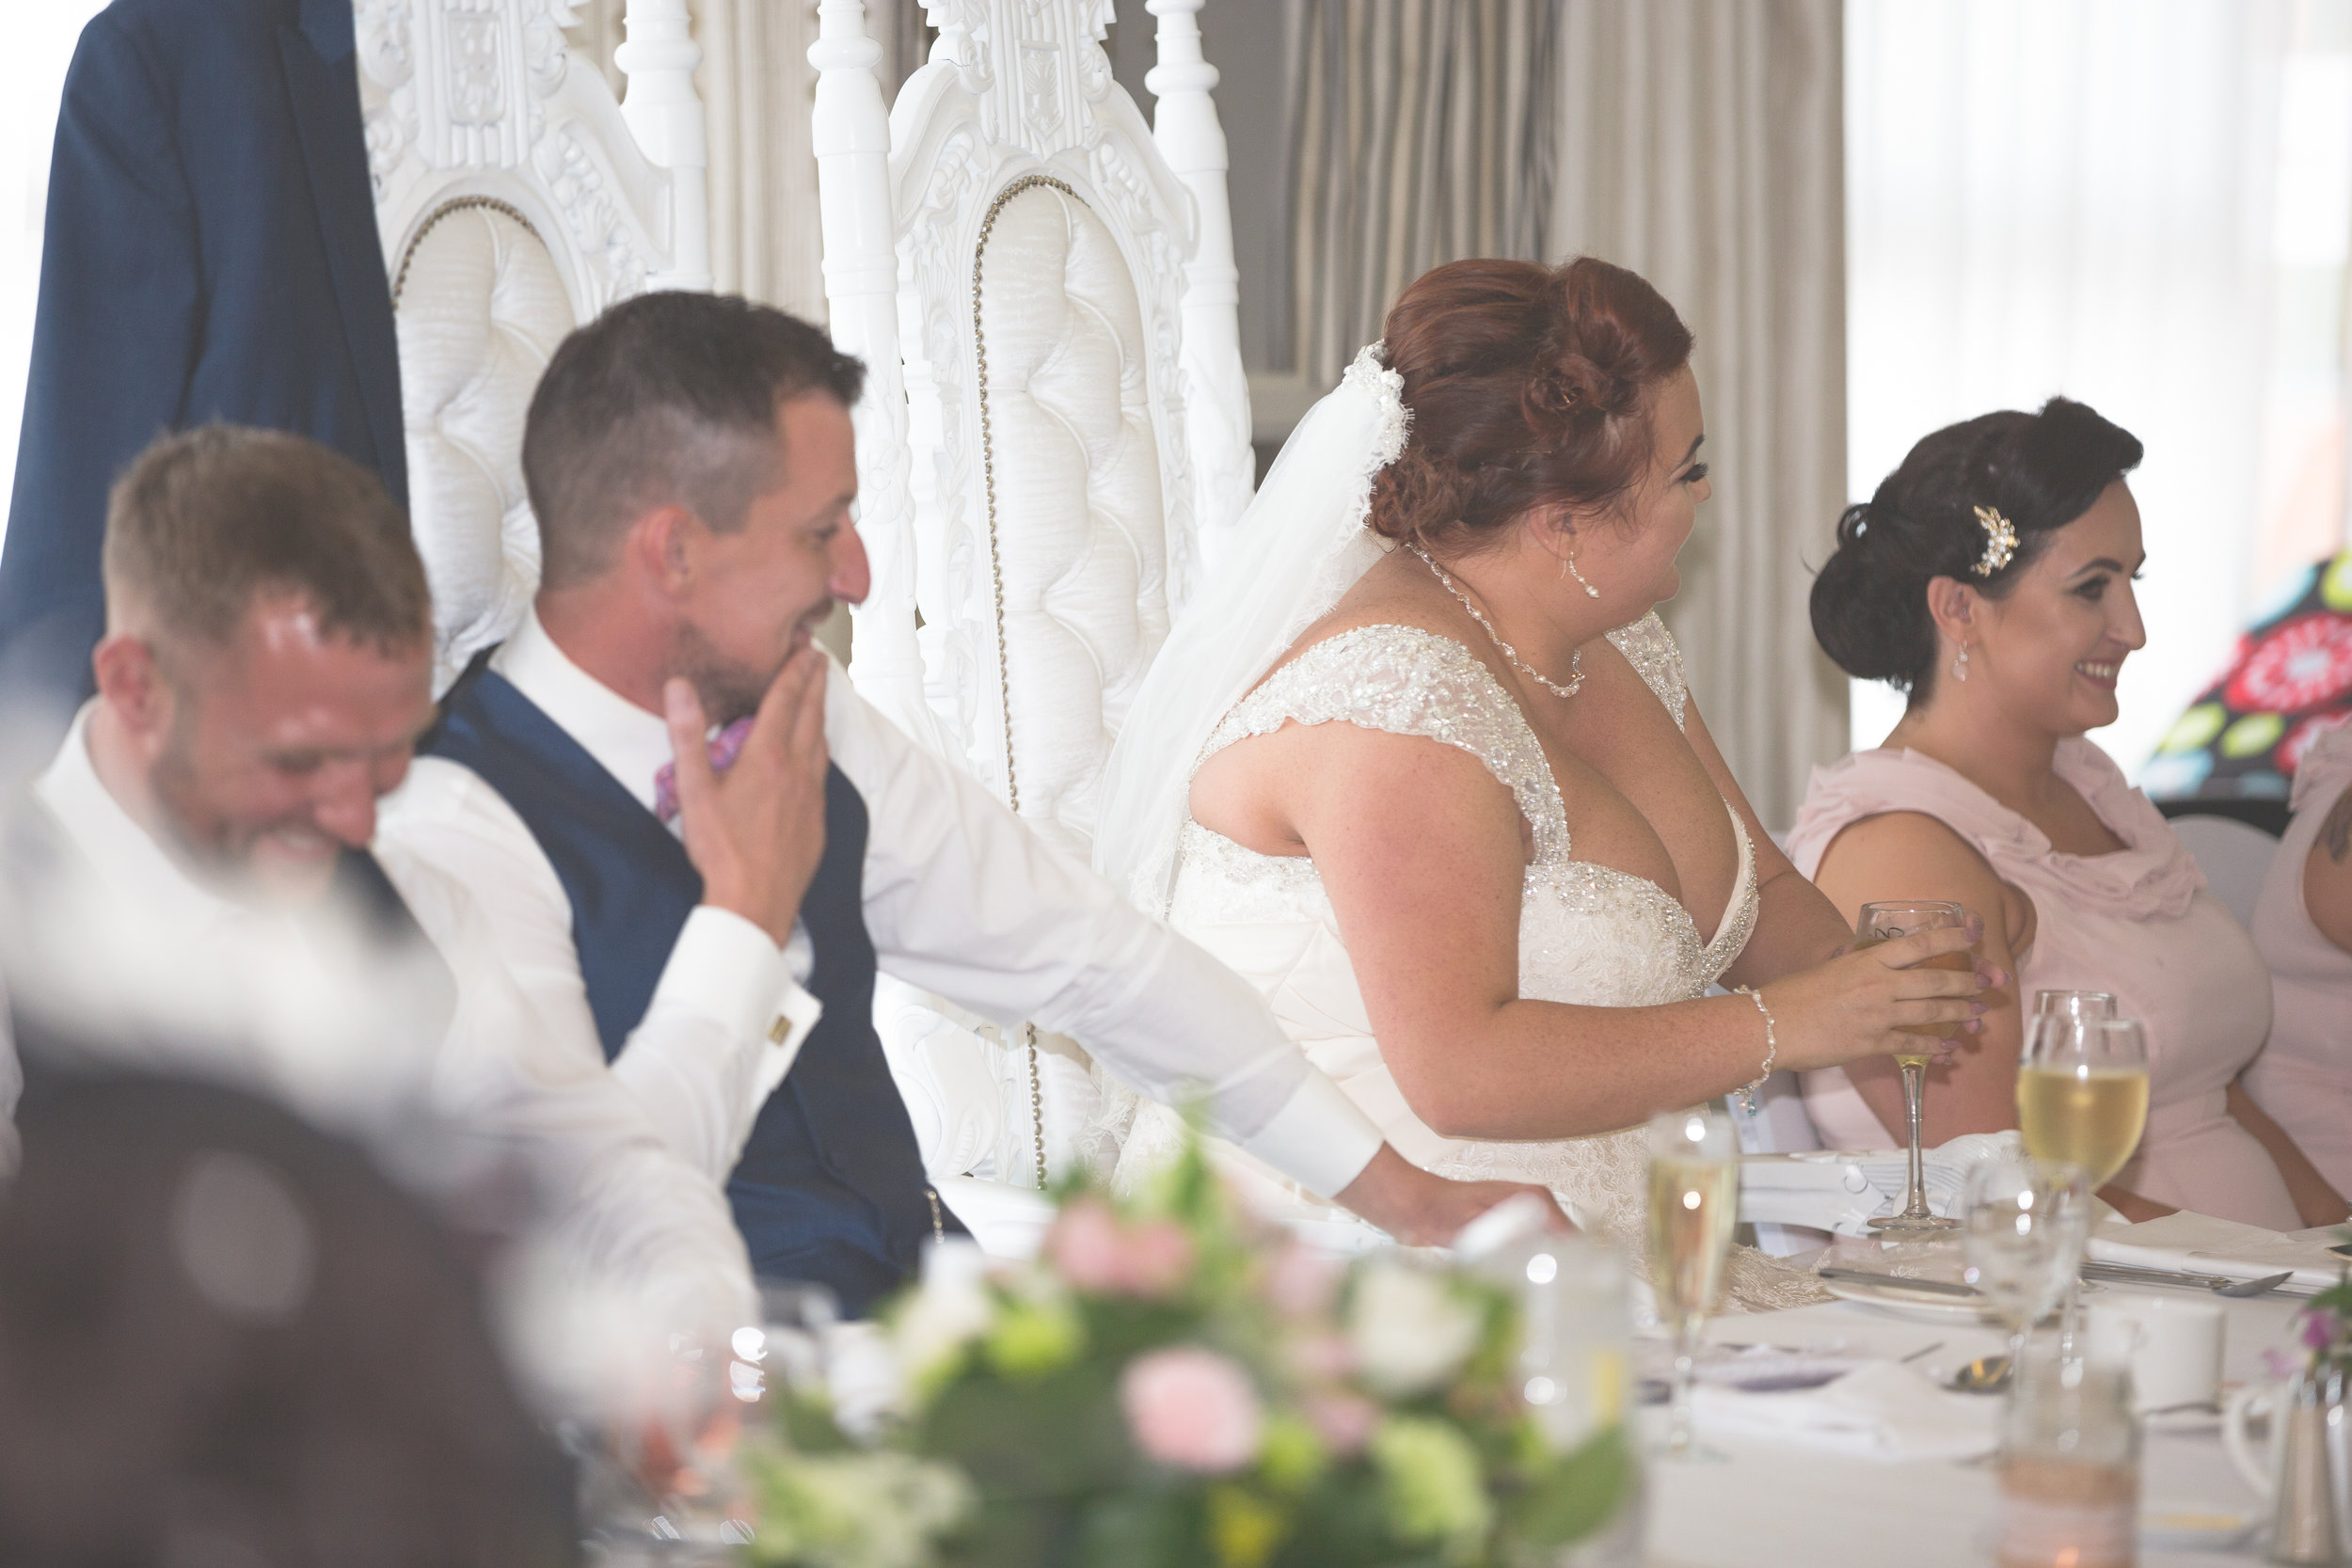 Antoinette & Stephen - Speeches | Brian McEwan Photography | Wedding Photographer Northern Ireland 23.jpg